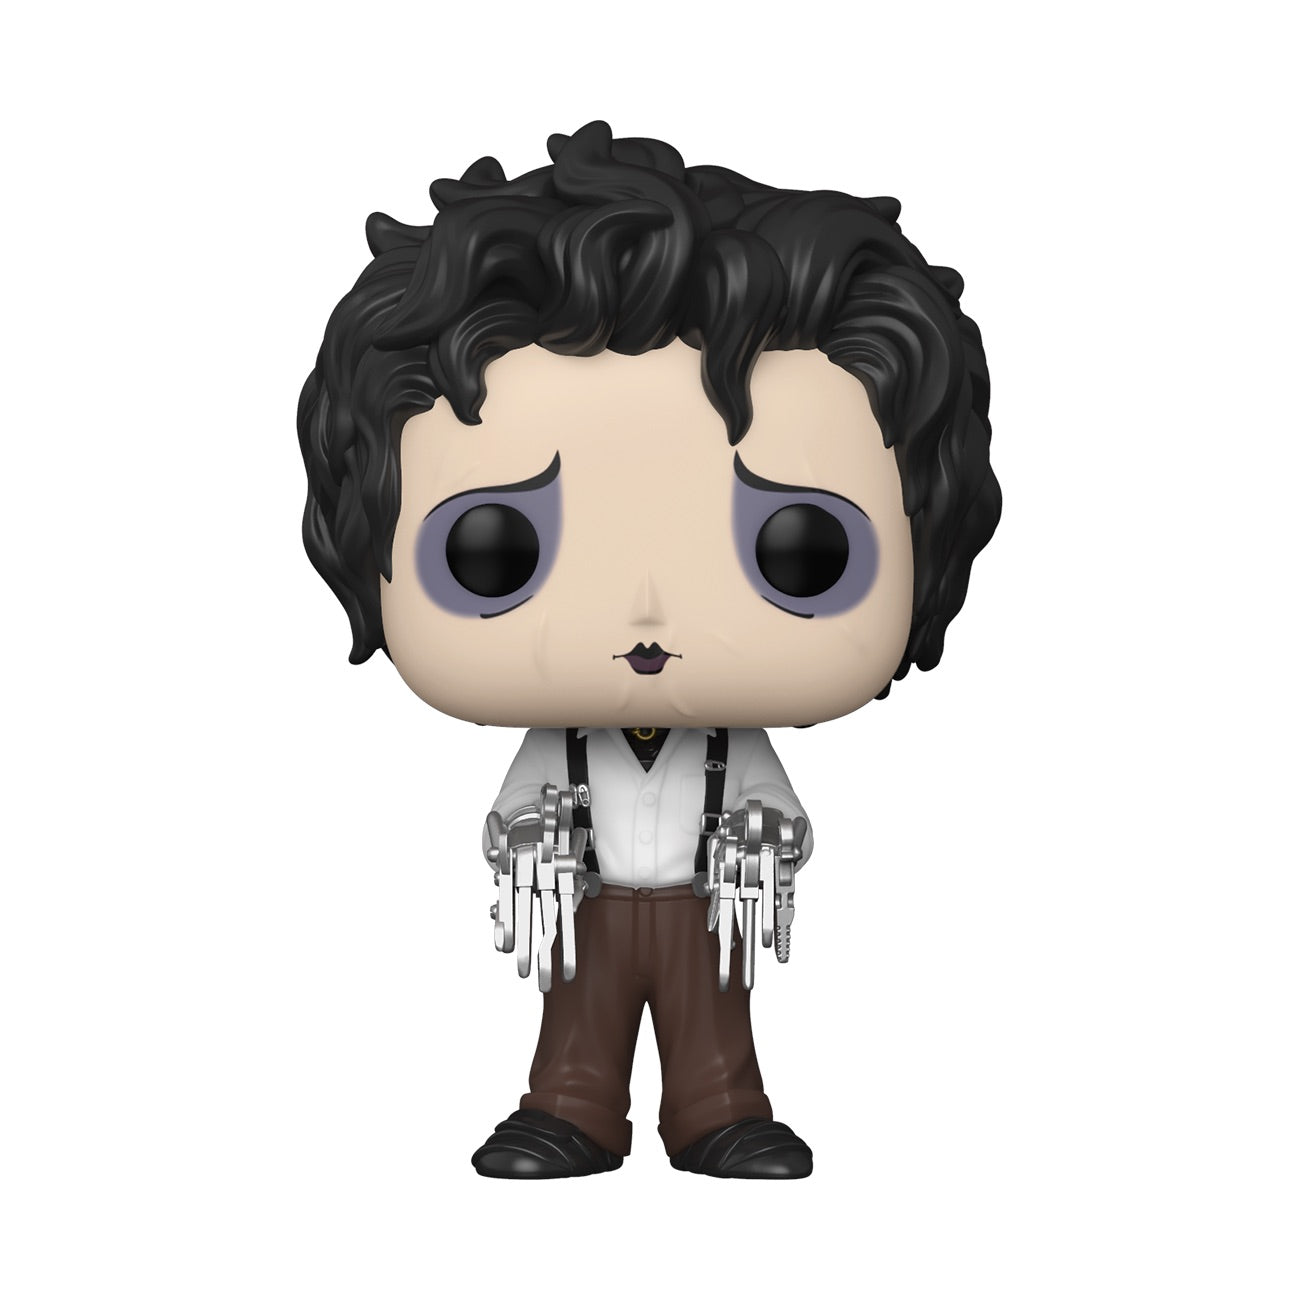 Edward Scissorhands Edward in Dress Clothes (October Preorder)